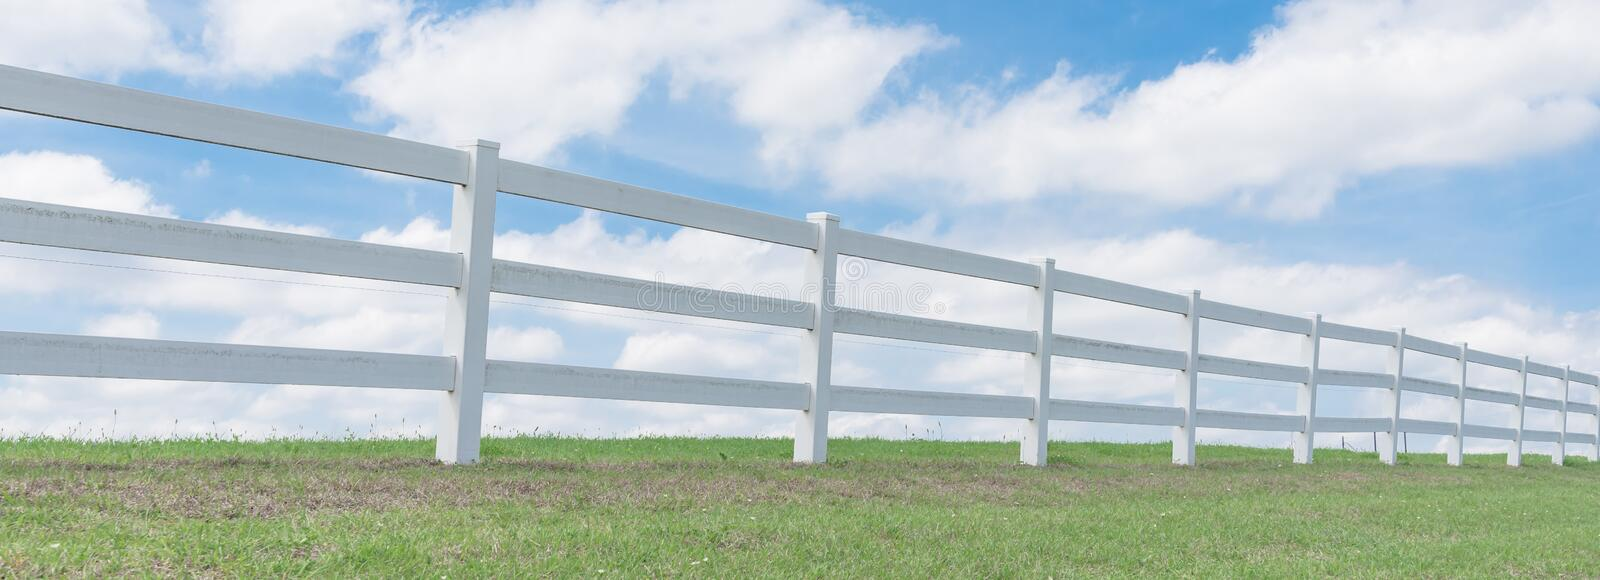 Country style wooden fence against cloud blue sky. Panorama white country style wooden fence against cloud blue sky. White fences on green grass at farm ranch royalty free stock photo